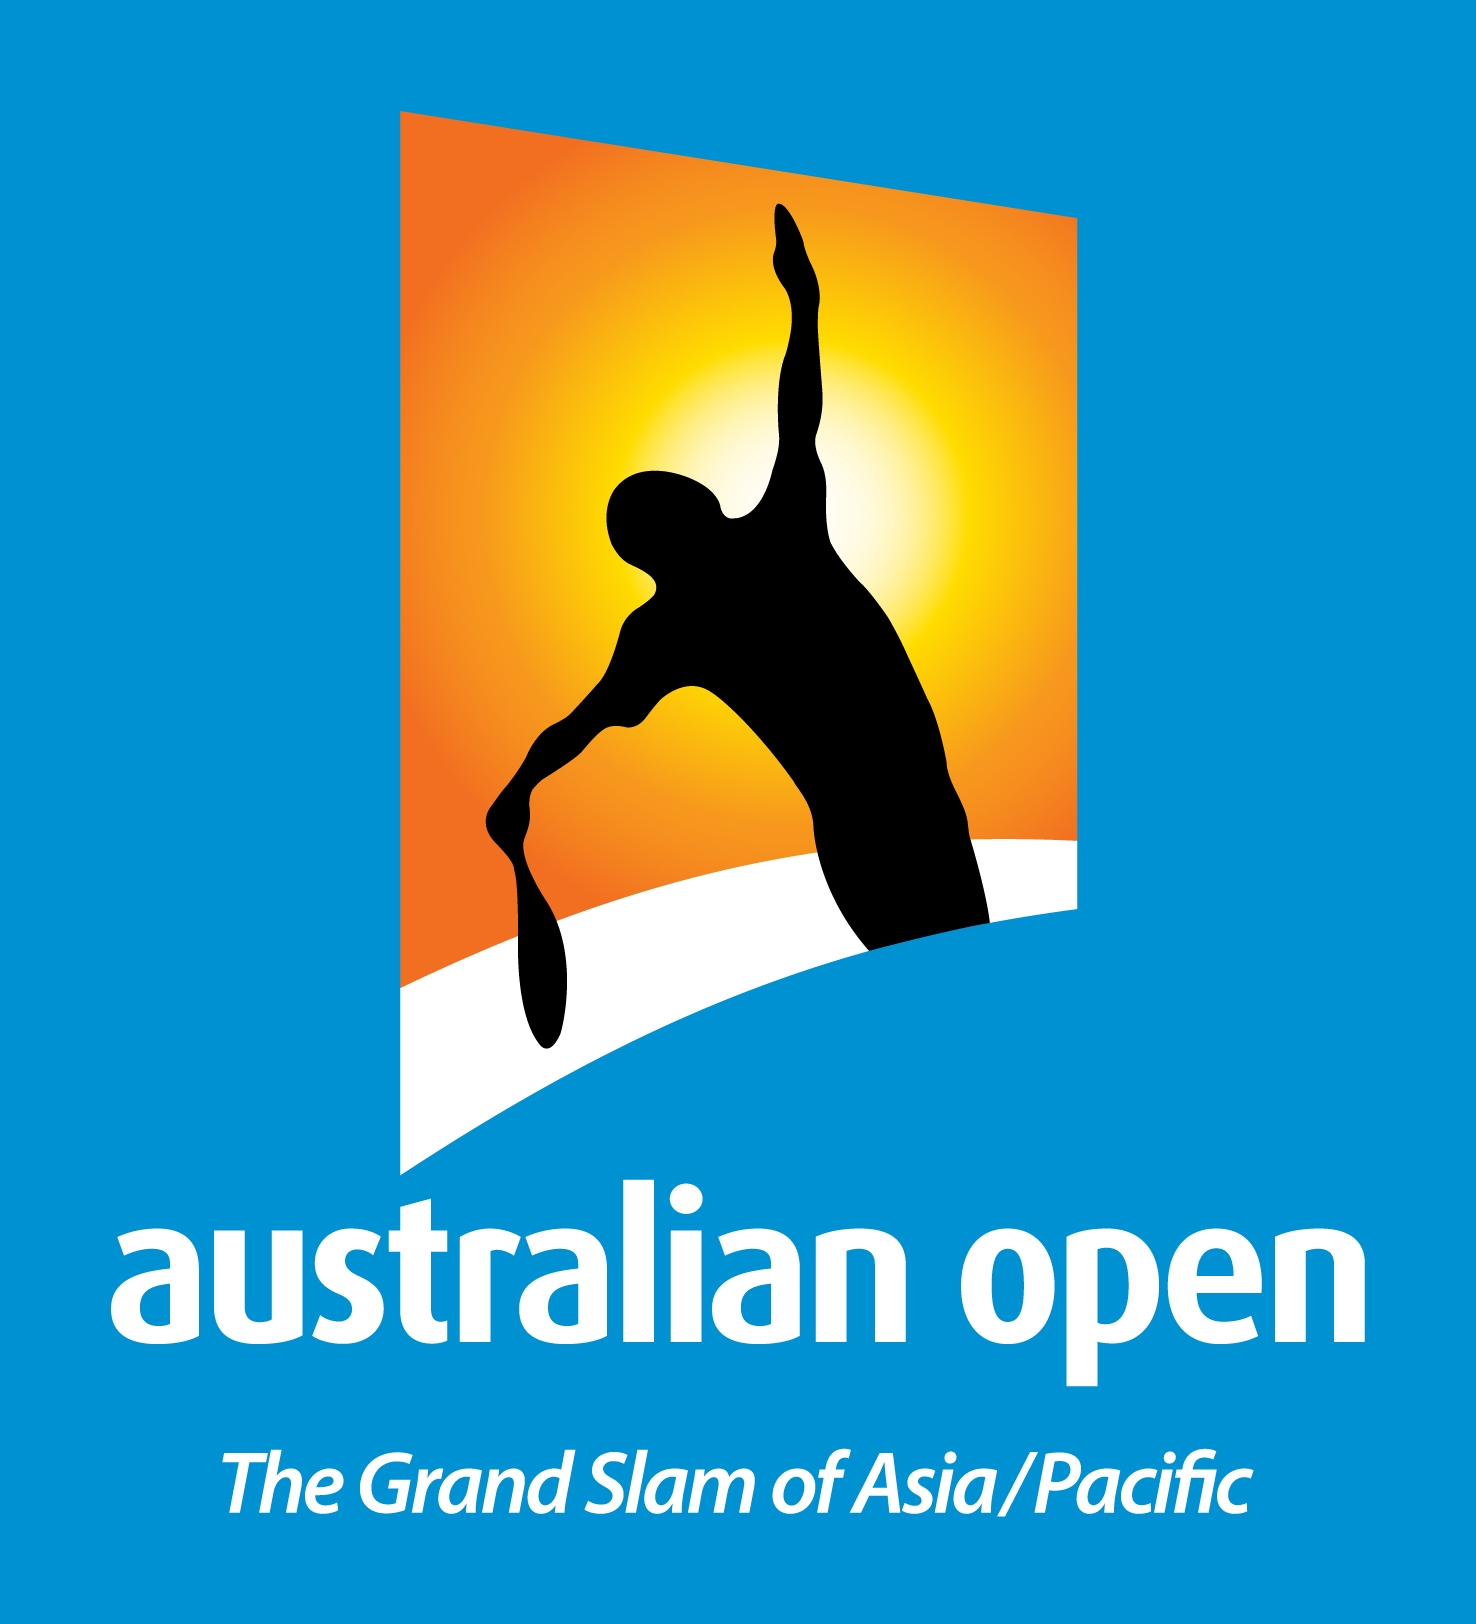 Australian Open (disambiguation)